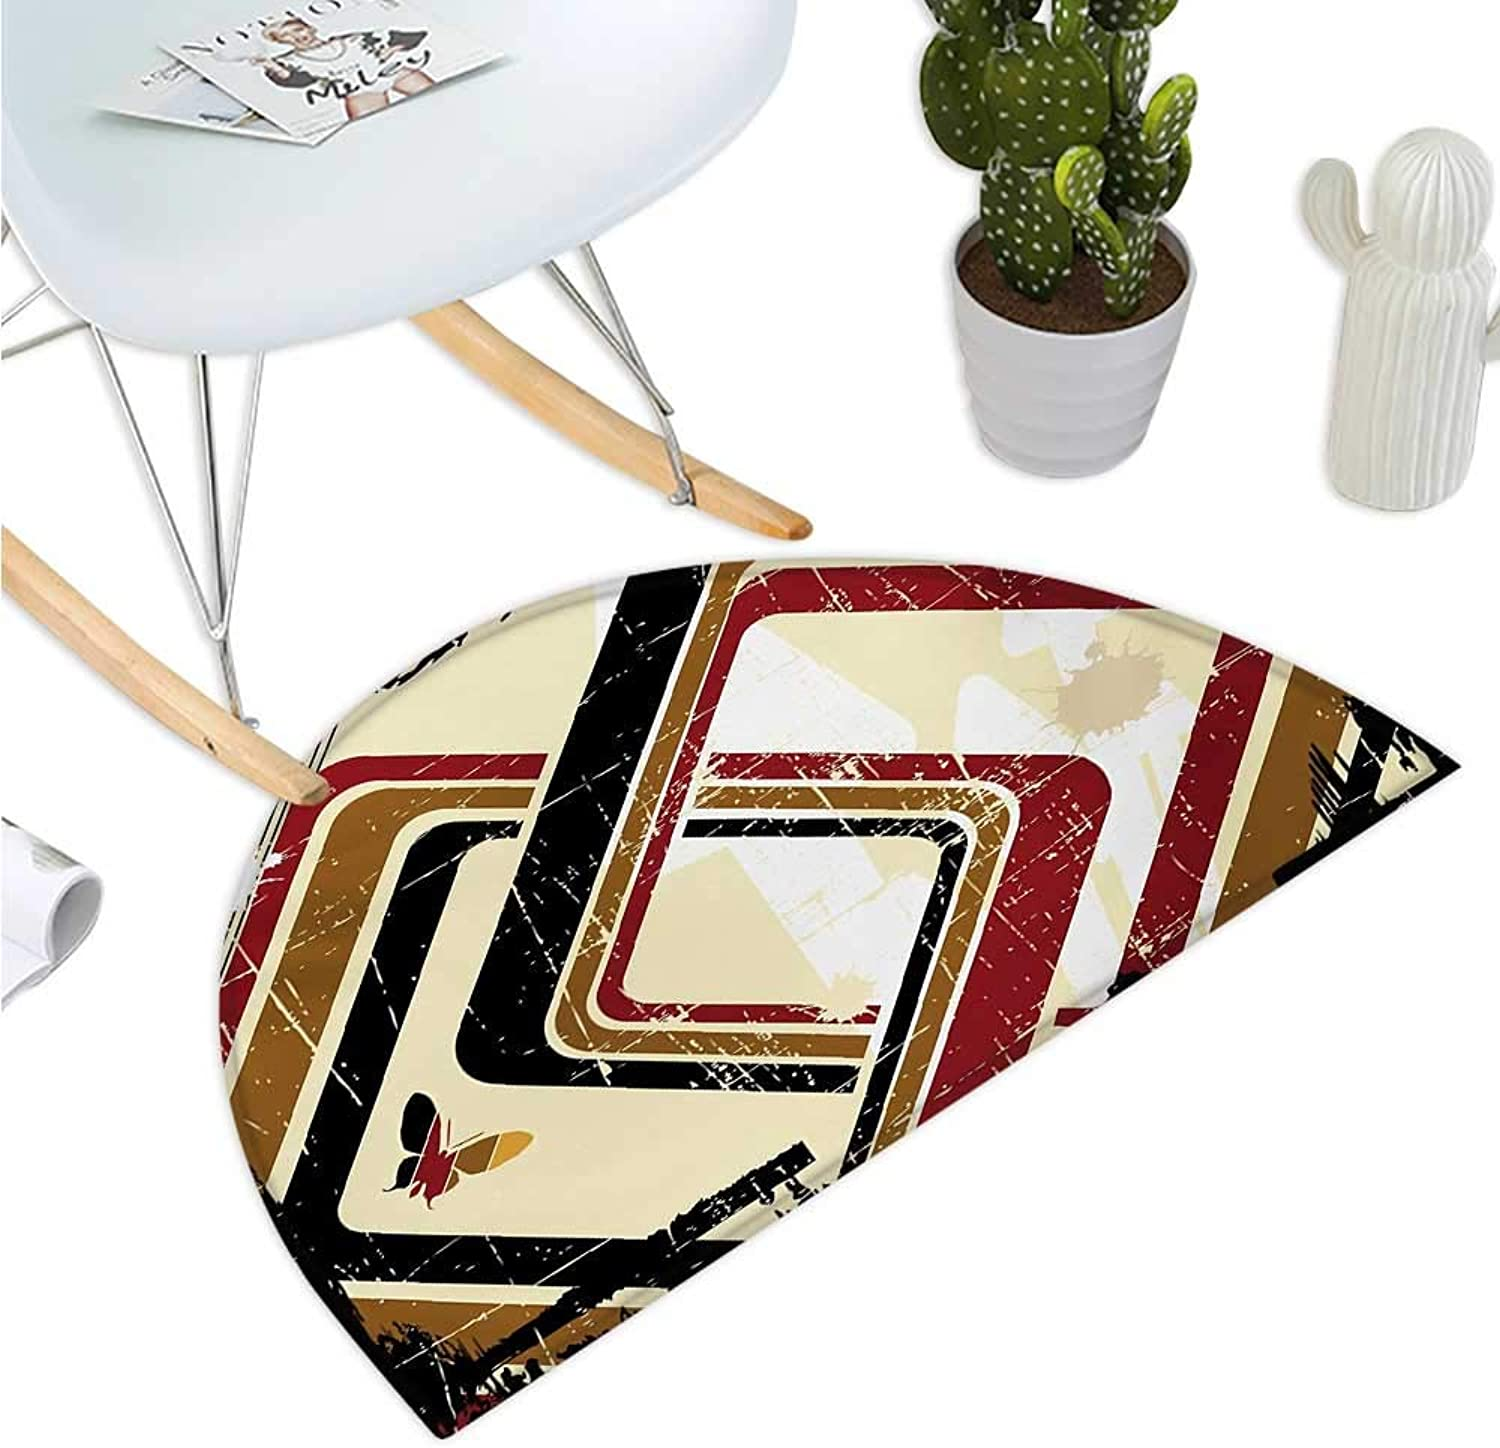 Abstract Half Round Door mats Trippy Forms in Grunge Effects Butterflies Retro Illustration Entry Door Mat H 35.4  xD 53.1  Pale Yellow Black Ruby Caramel